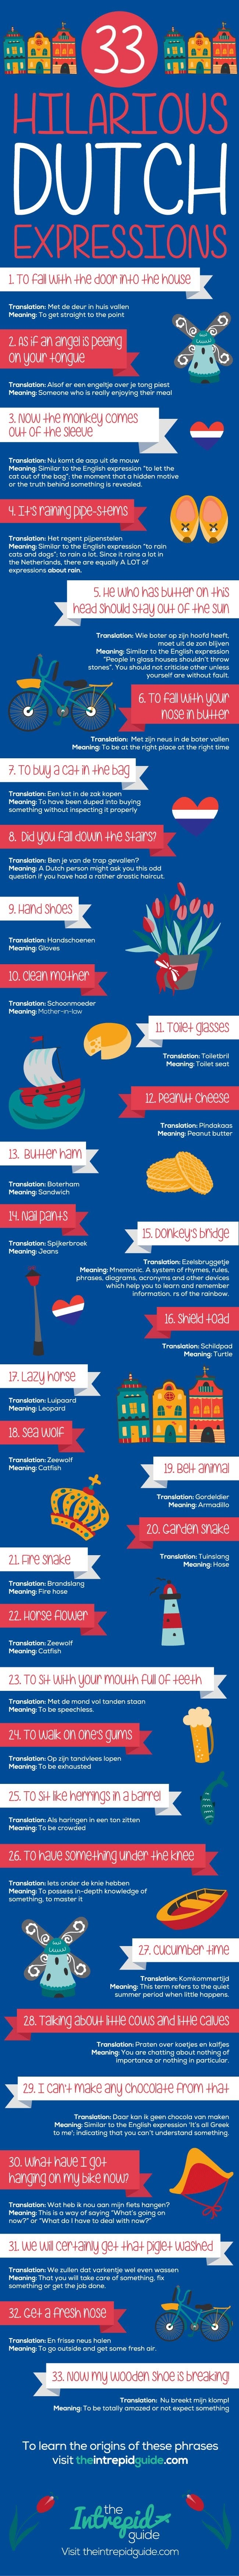 33 Eye Wateringly Comic Dutch phrases and curiosity #infographic